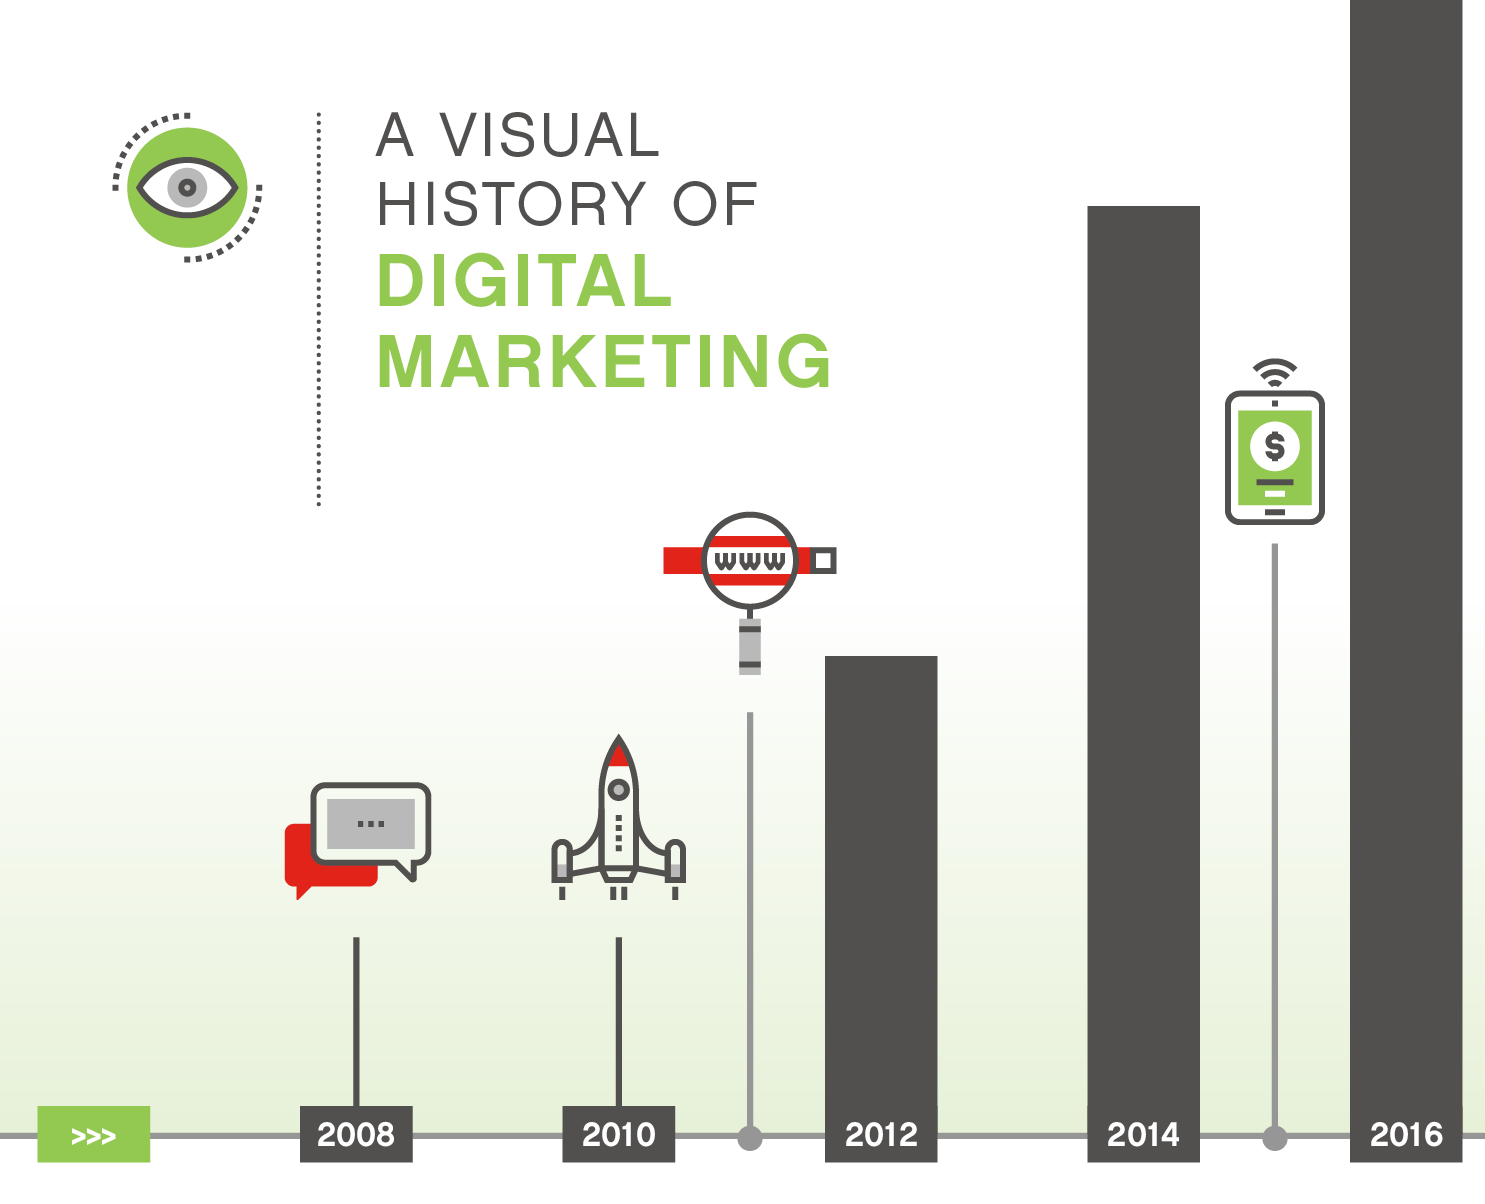 A Visual History of Digital Marketing